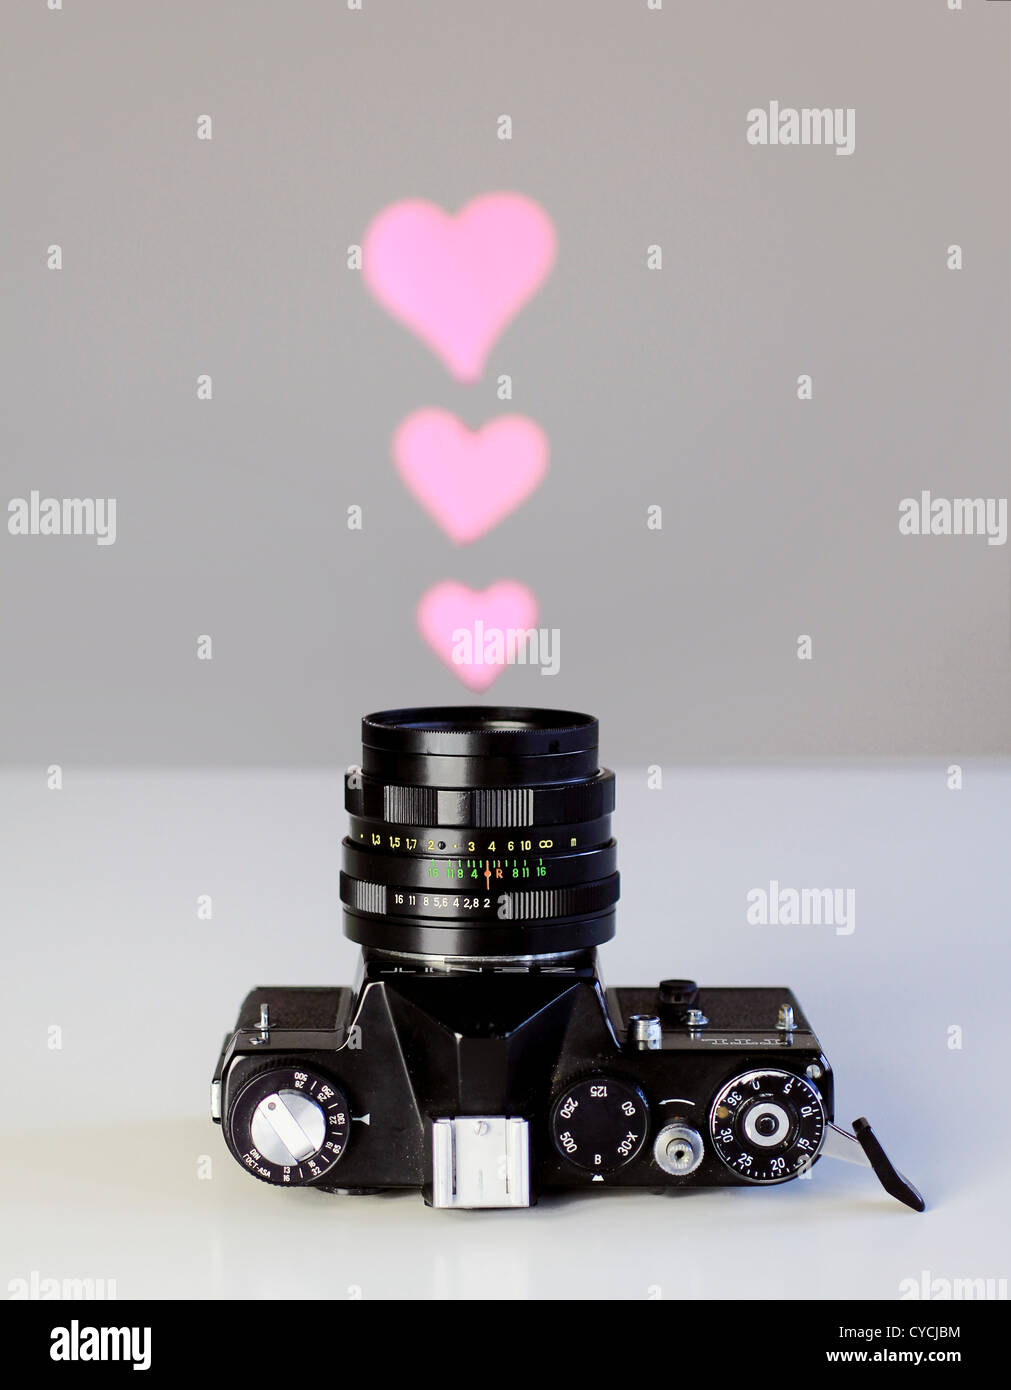 Camera,photographie,passion Photo Stock